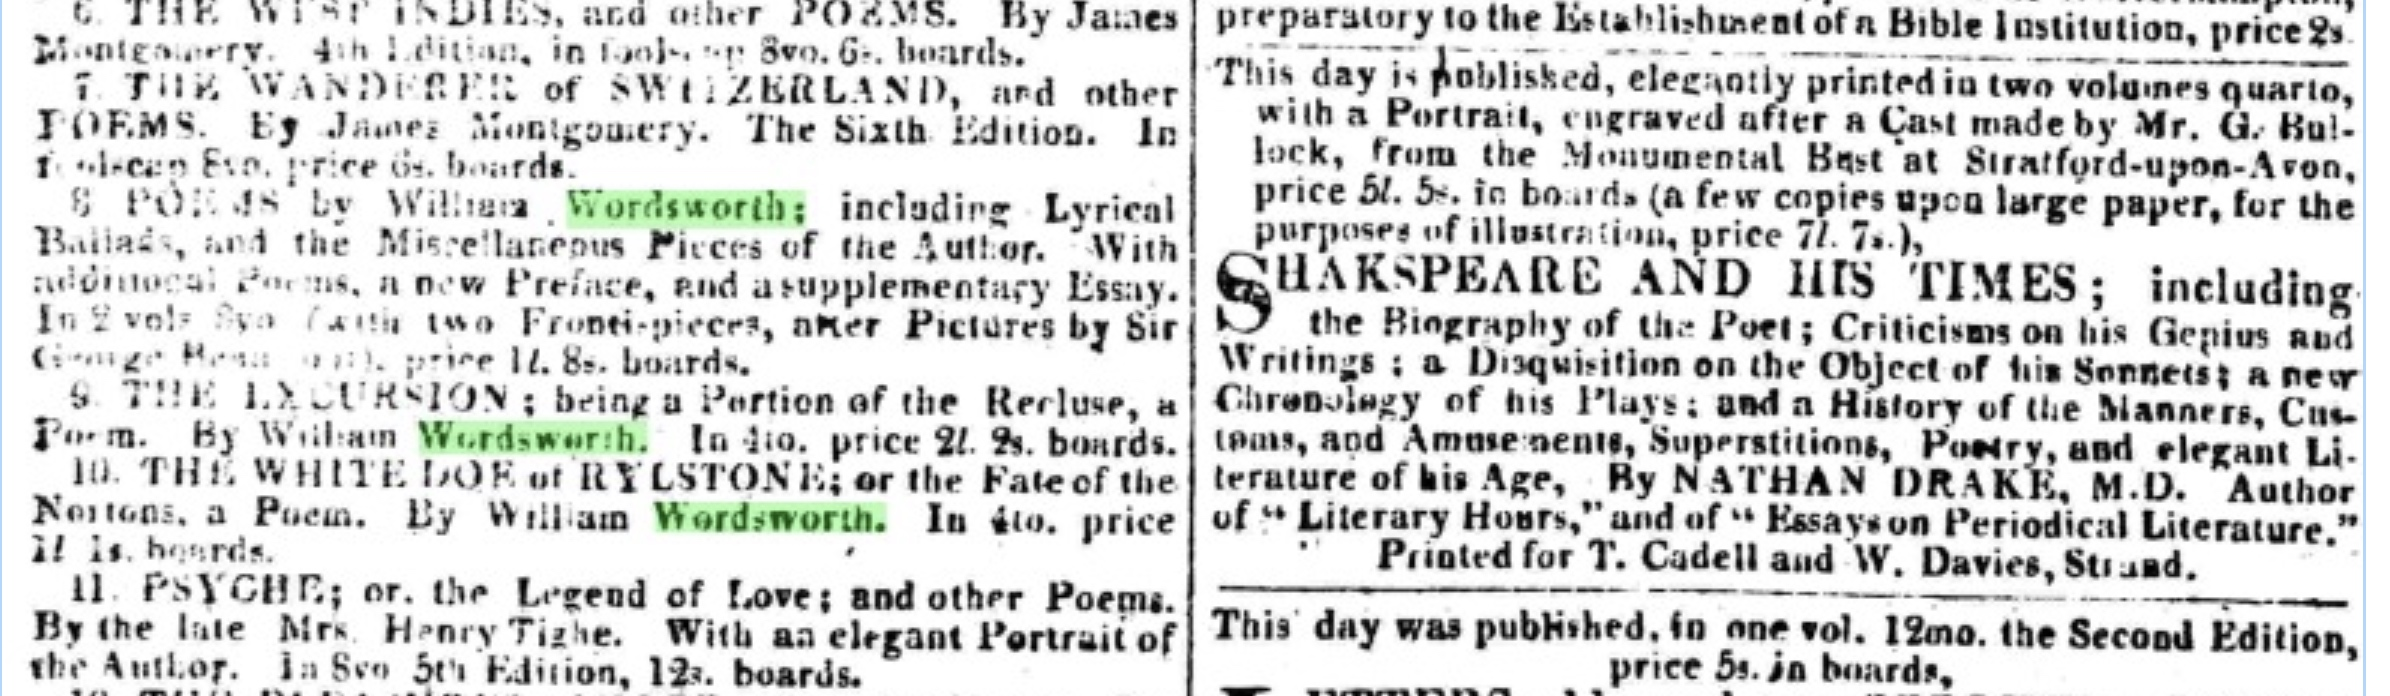 Some of Wordsworth's poetry advertised in The           Morning Post (London), Friday, 26 December 1817, just around when Keats is seeing         Wordsworth. Click to enlarge.